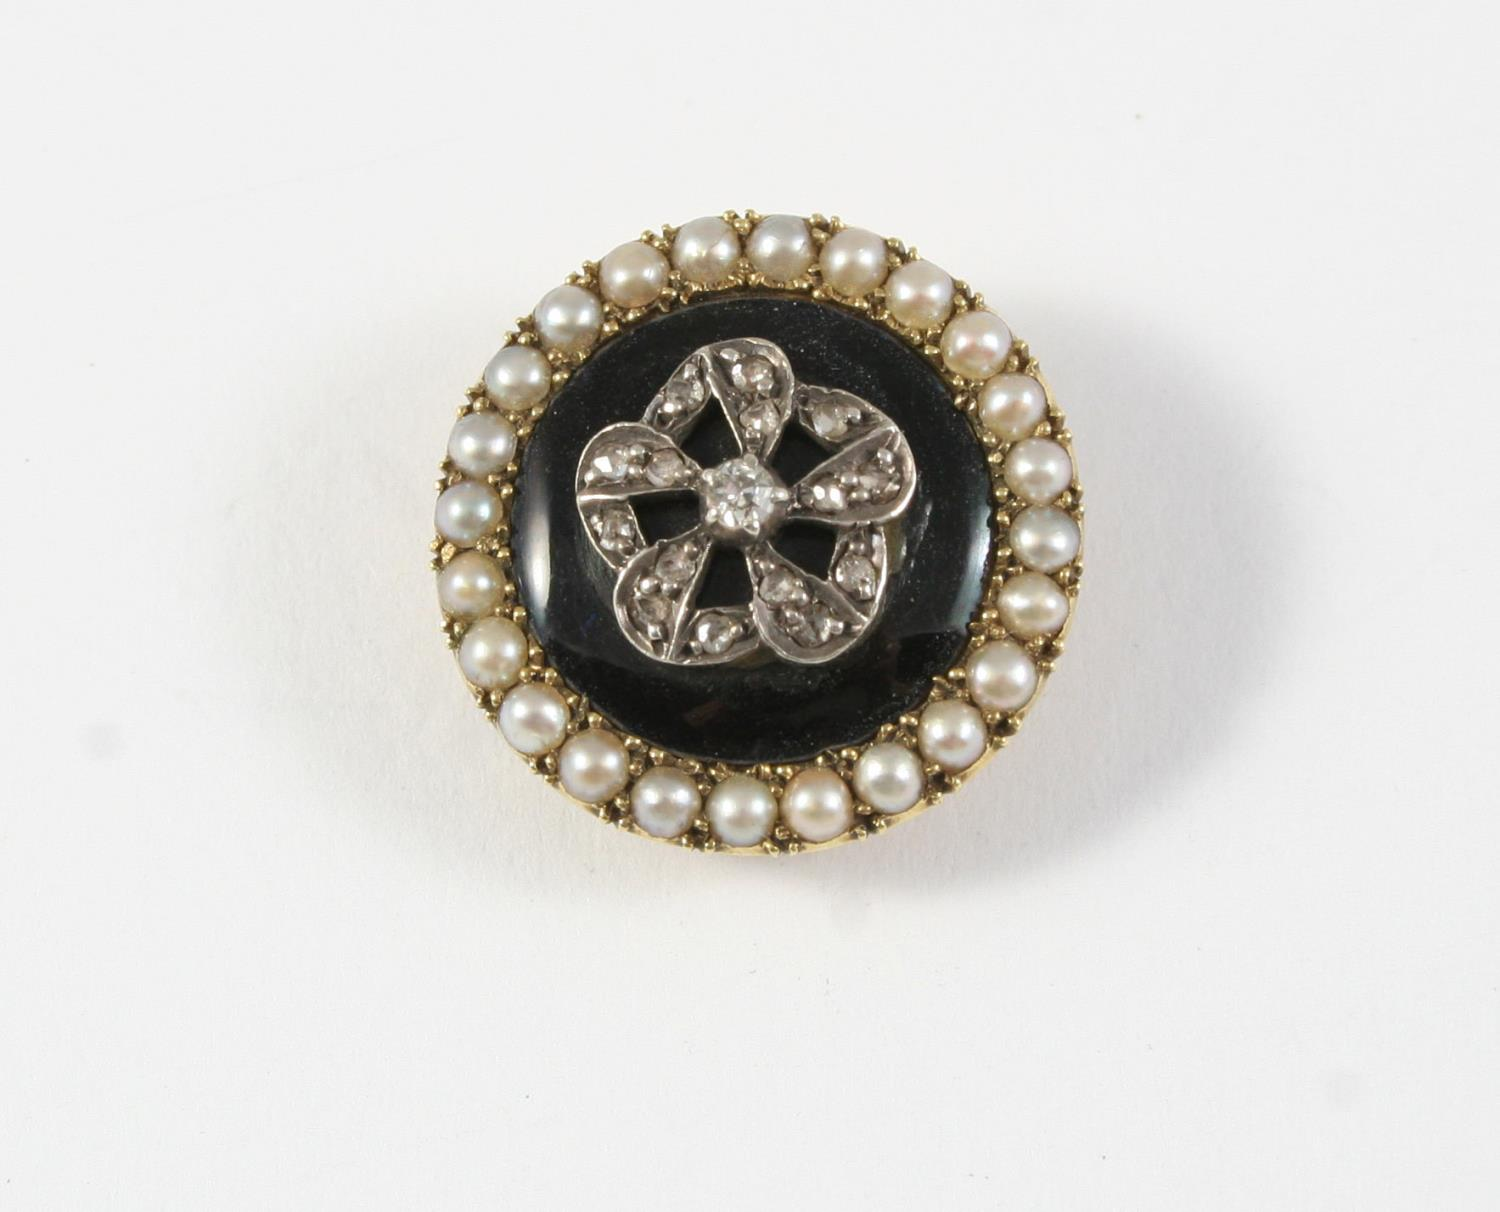 A VICTORIAN DIAMOND, PEARL AND BLACK ENAMEL BROOCH of circular form, the black enamel centre mounted